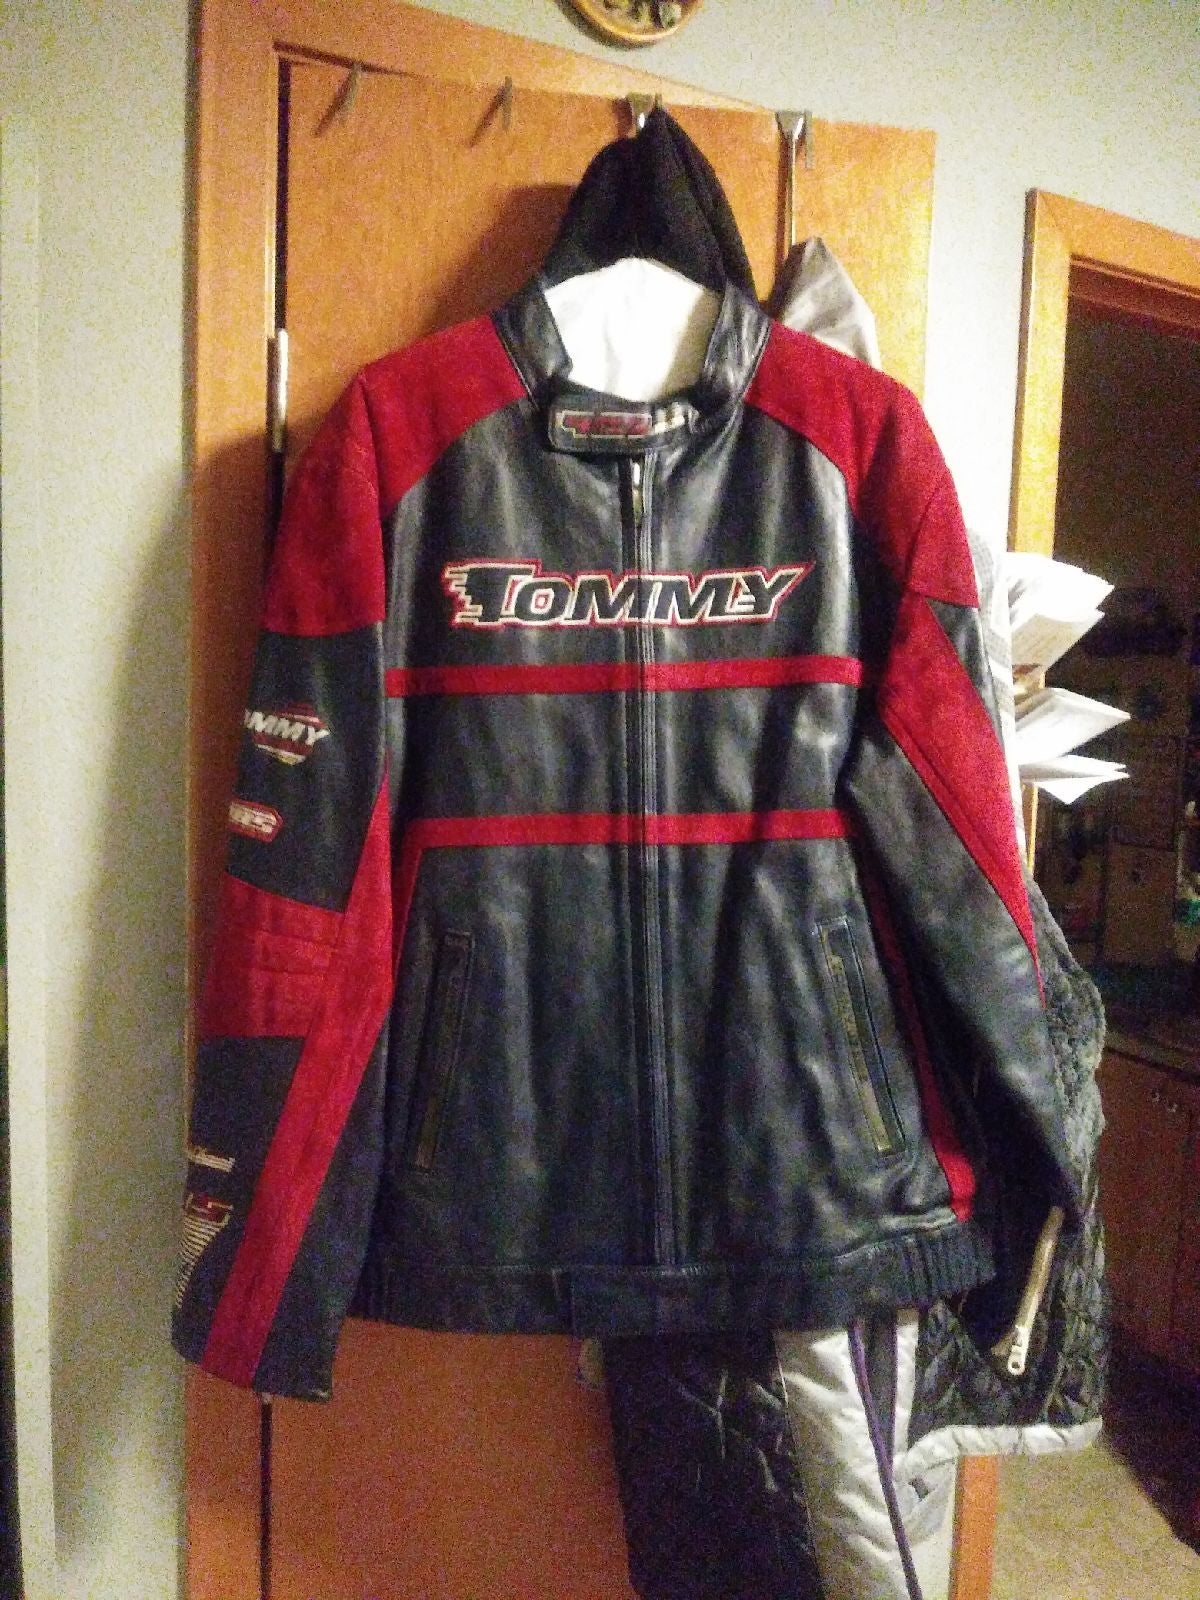 Tommy Hilfiger motorcycle leather jacket